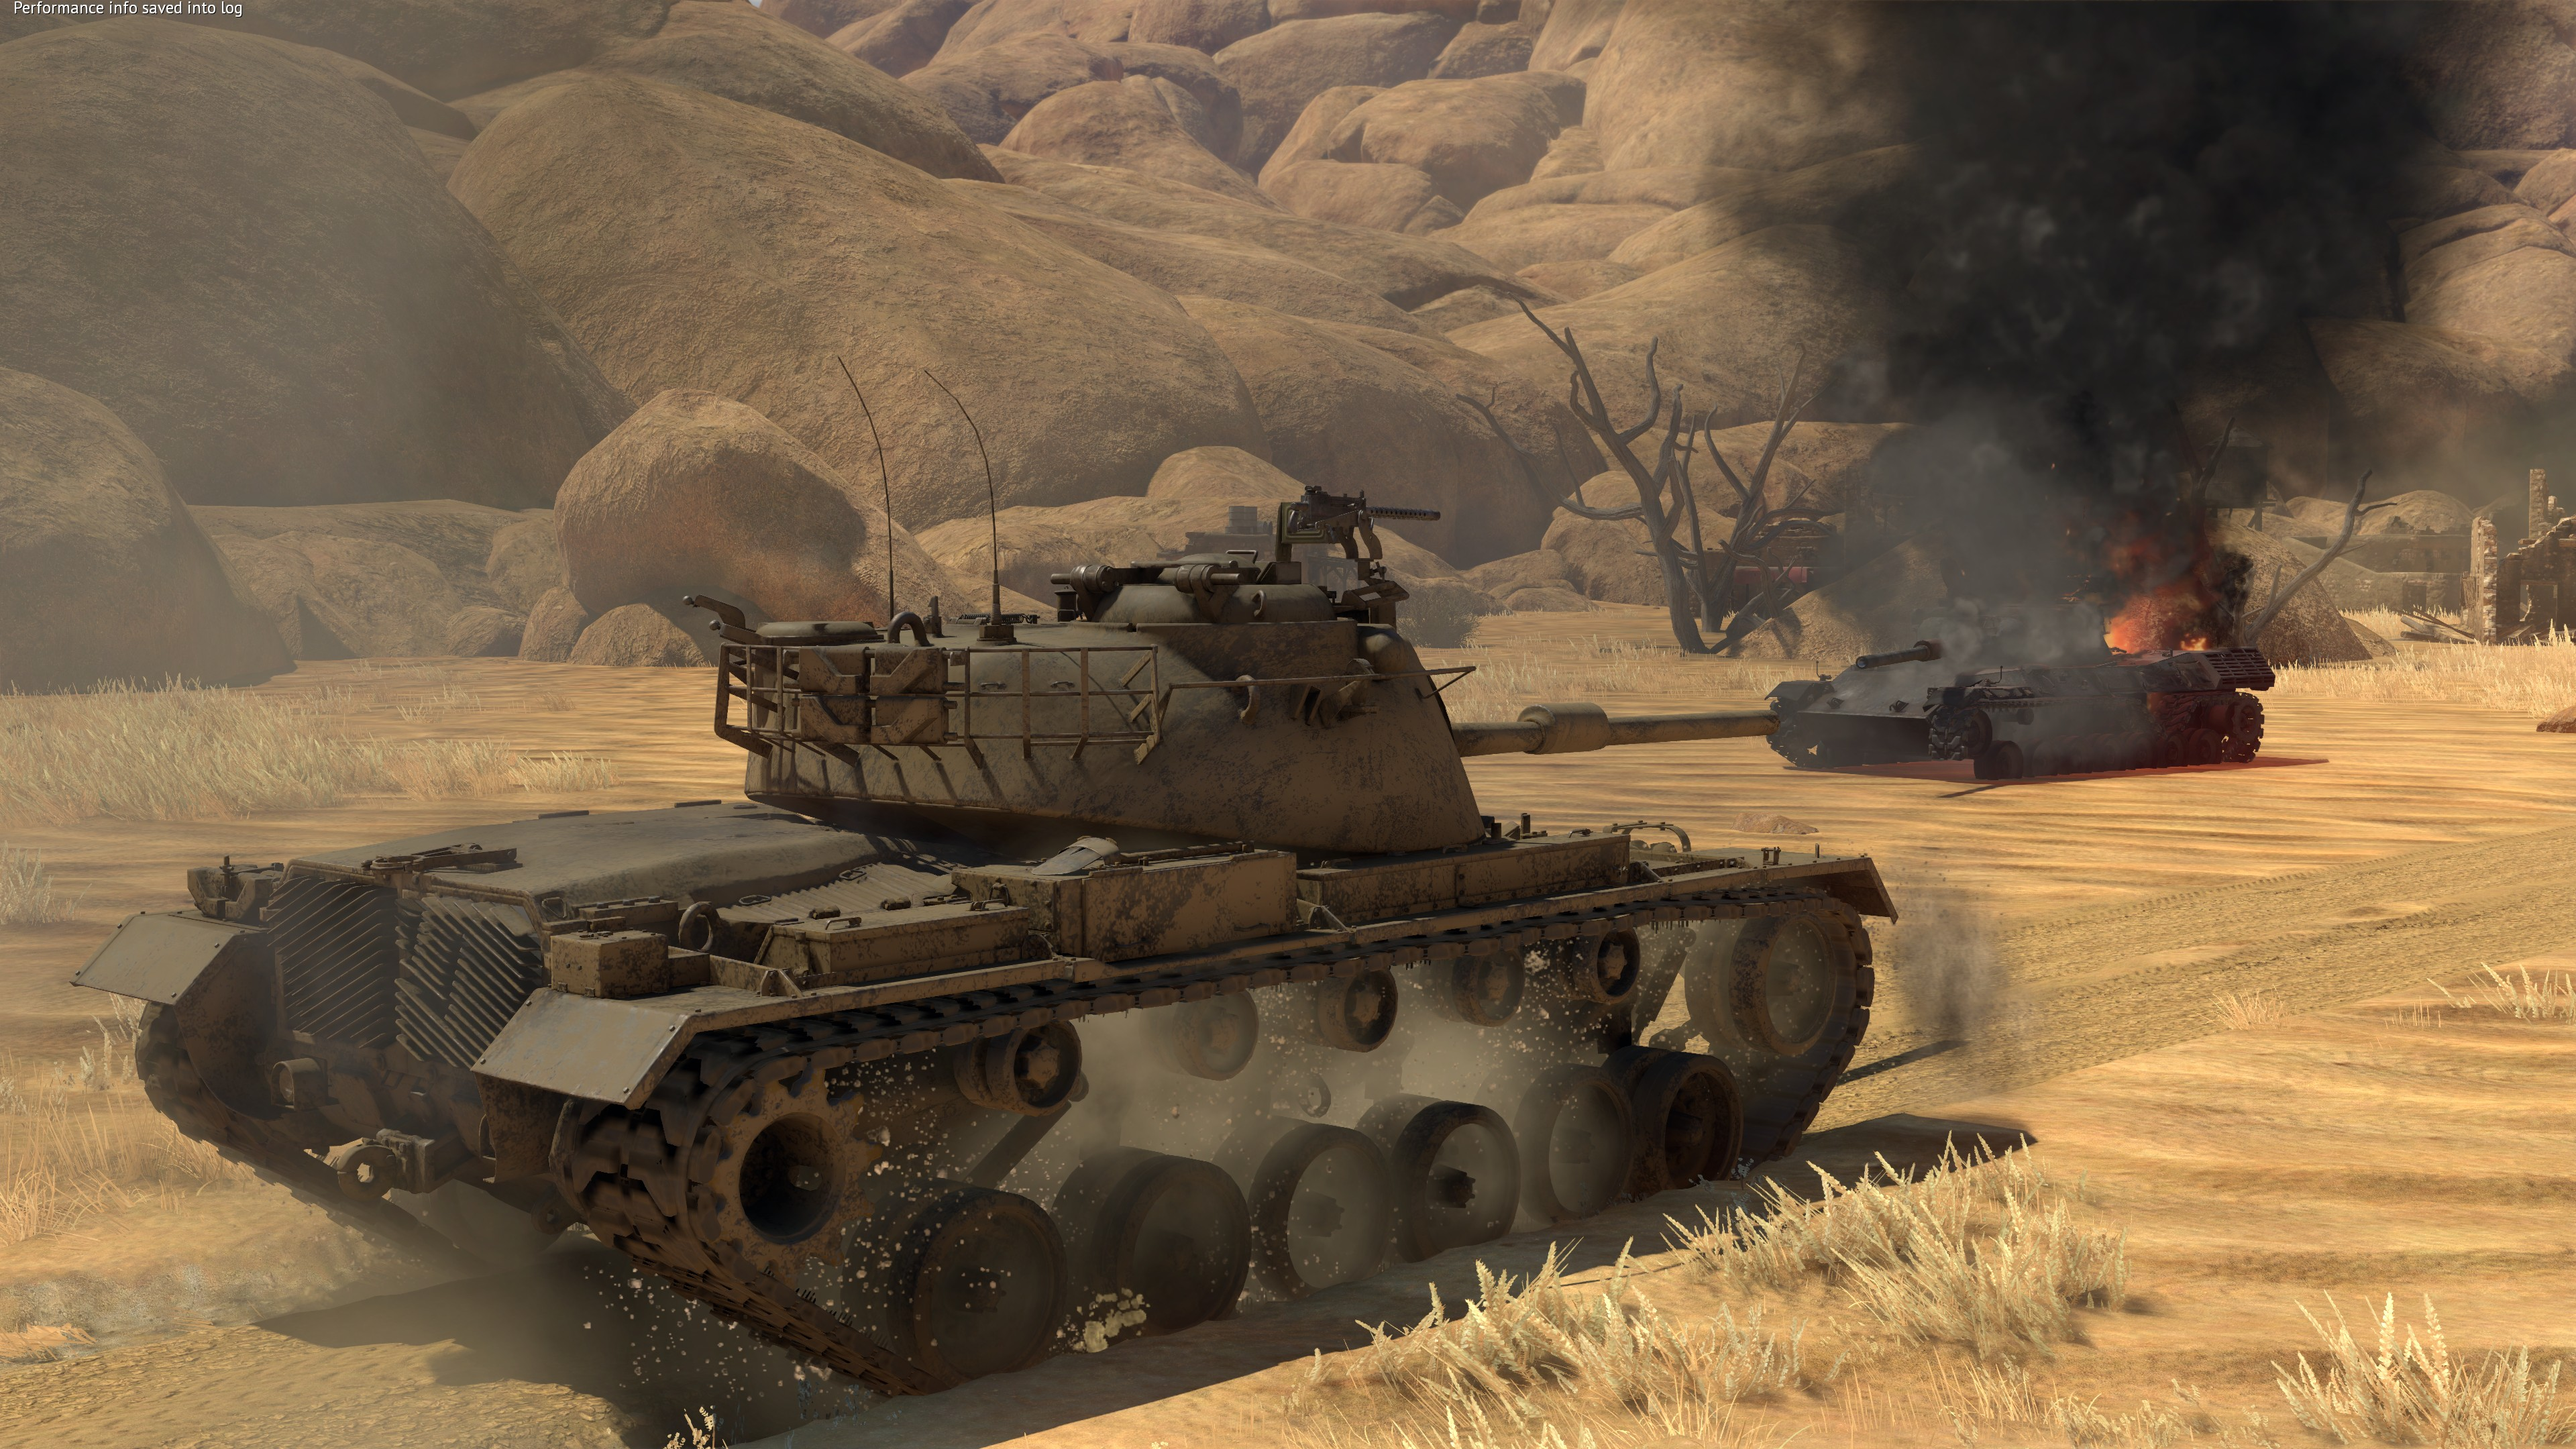 War Thunder provides an immersive and realistic multiplayer tank combat experience.